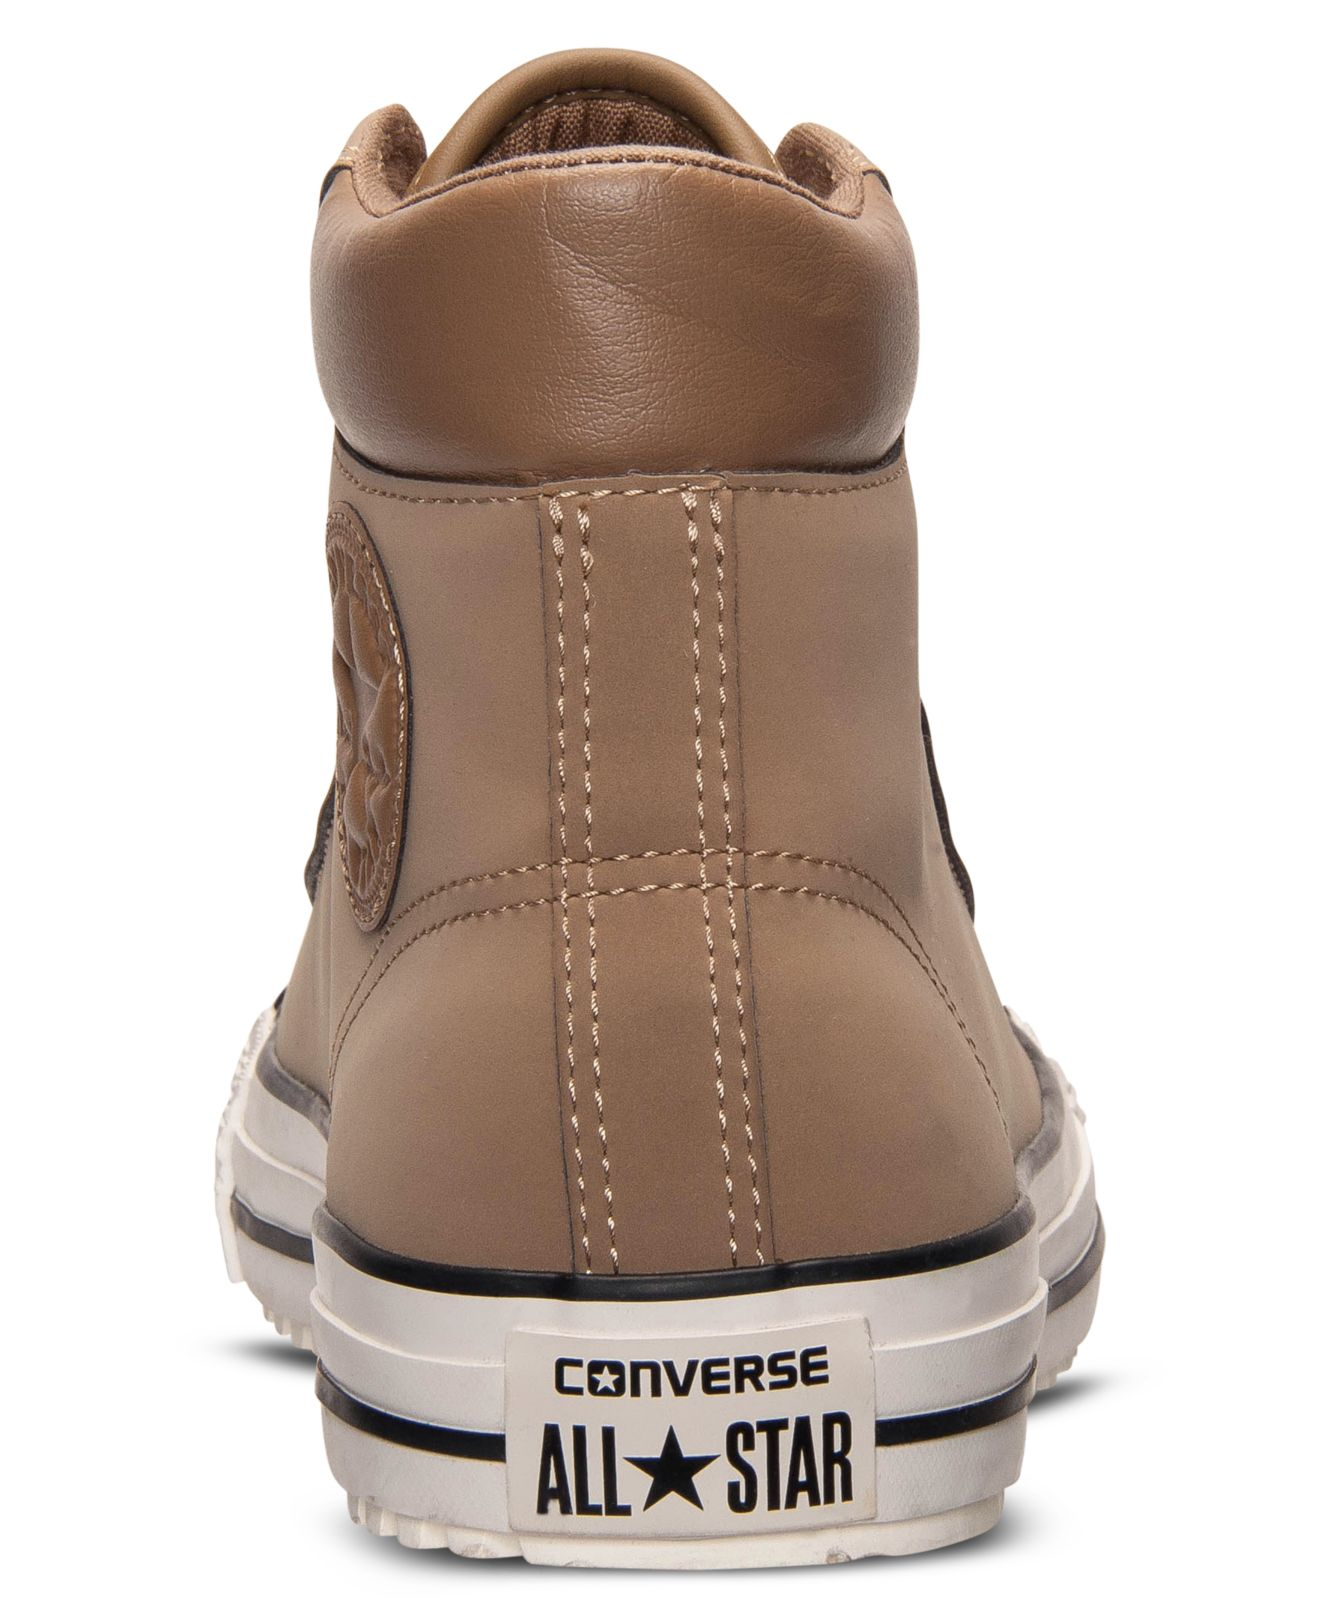 Converse Chuck Taylor All Star Boot Pc Sneakers Brown Shoes Unisex Swede Leather